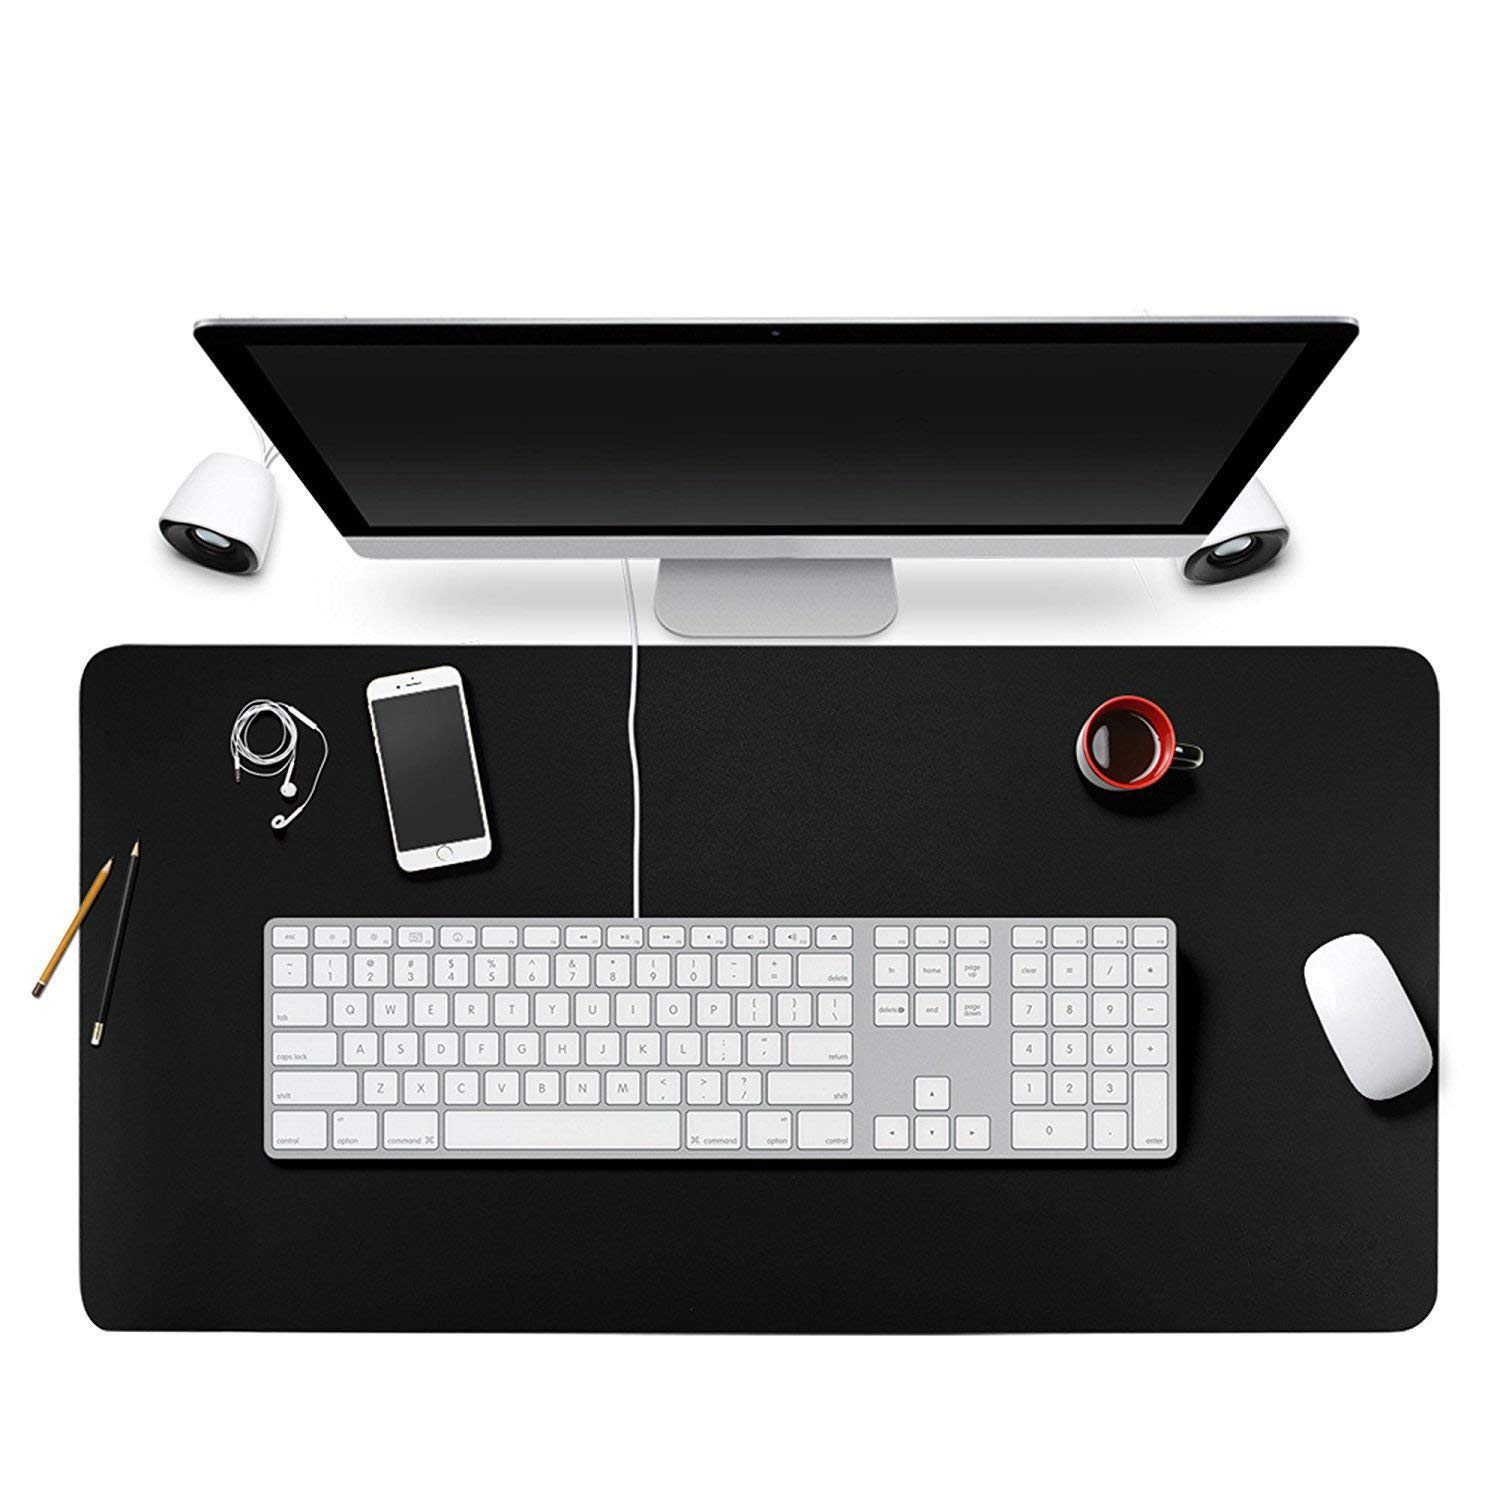 """BUBM Desk Pad Protector 31.5"""" x 15.7"""", PU Leather Desk Mat Blotters Mouse Pad Organizer with Comfortable Writing Surface(Black)"""